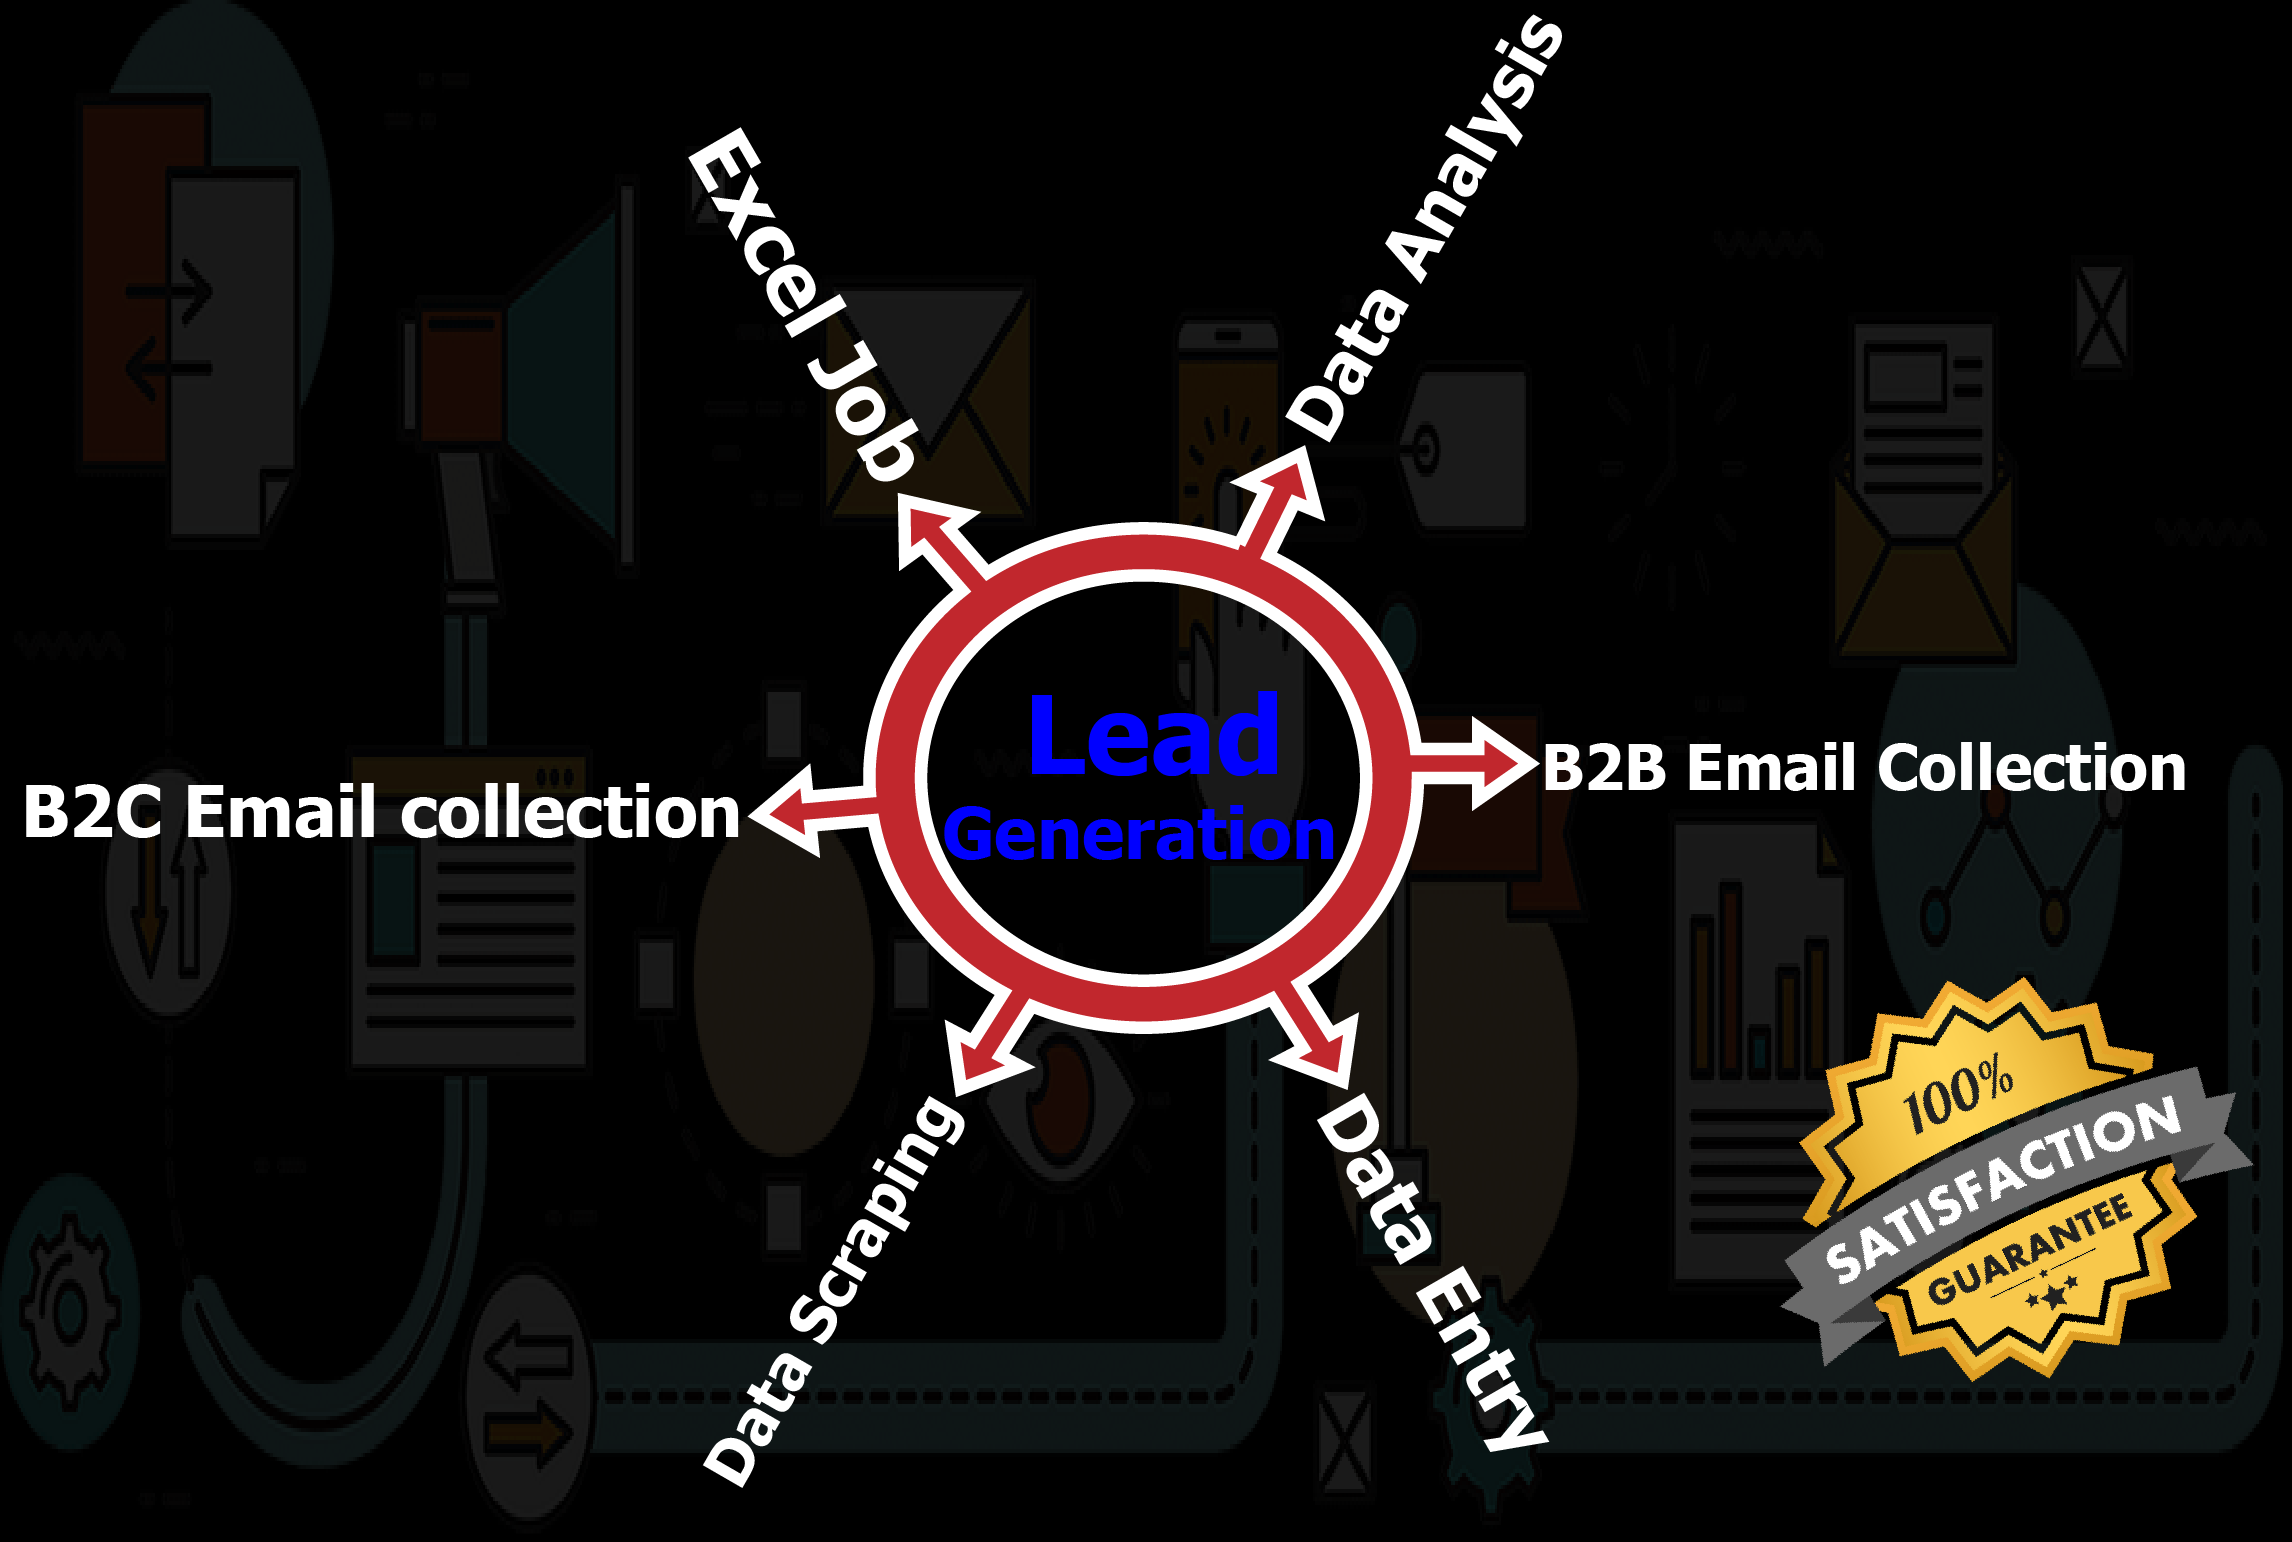 Lead generation for any country